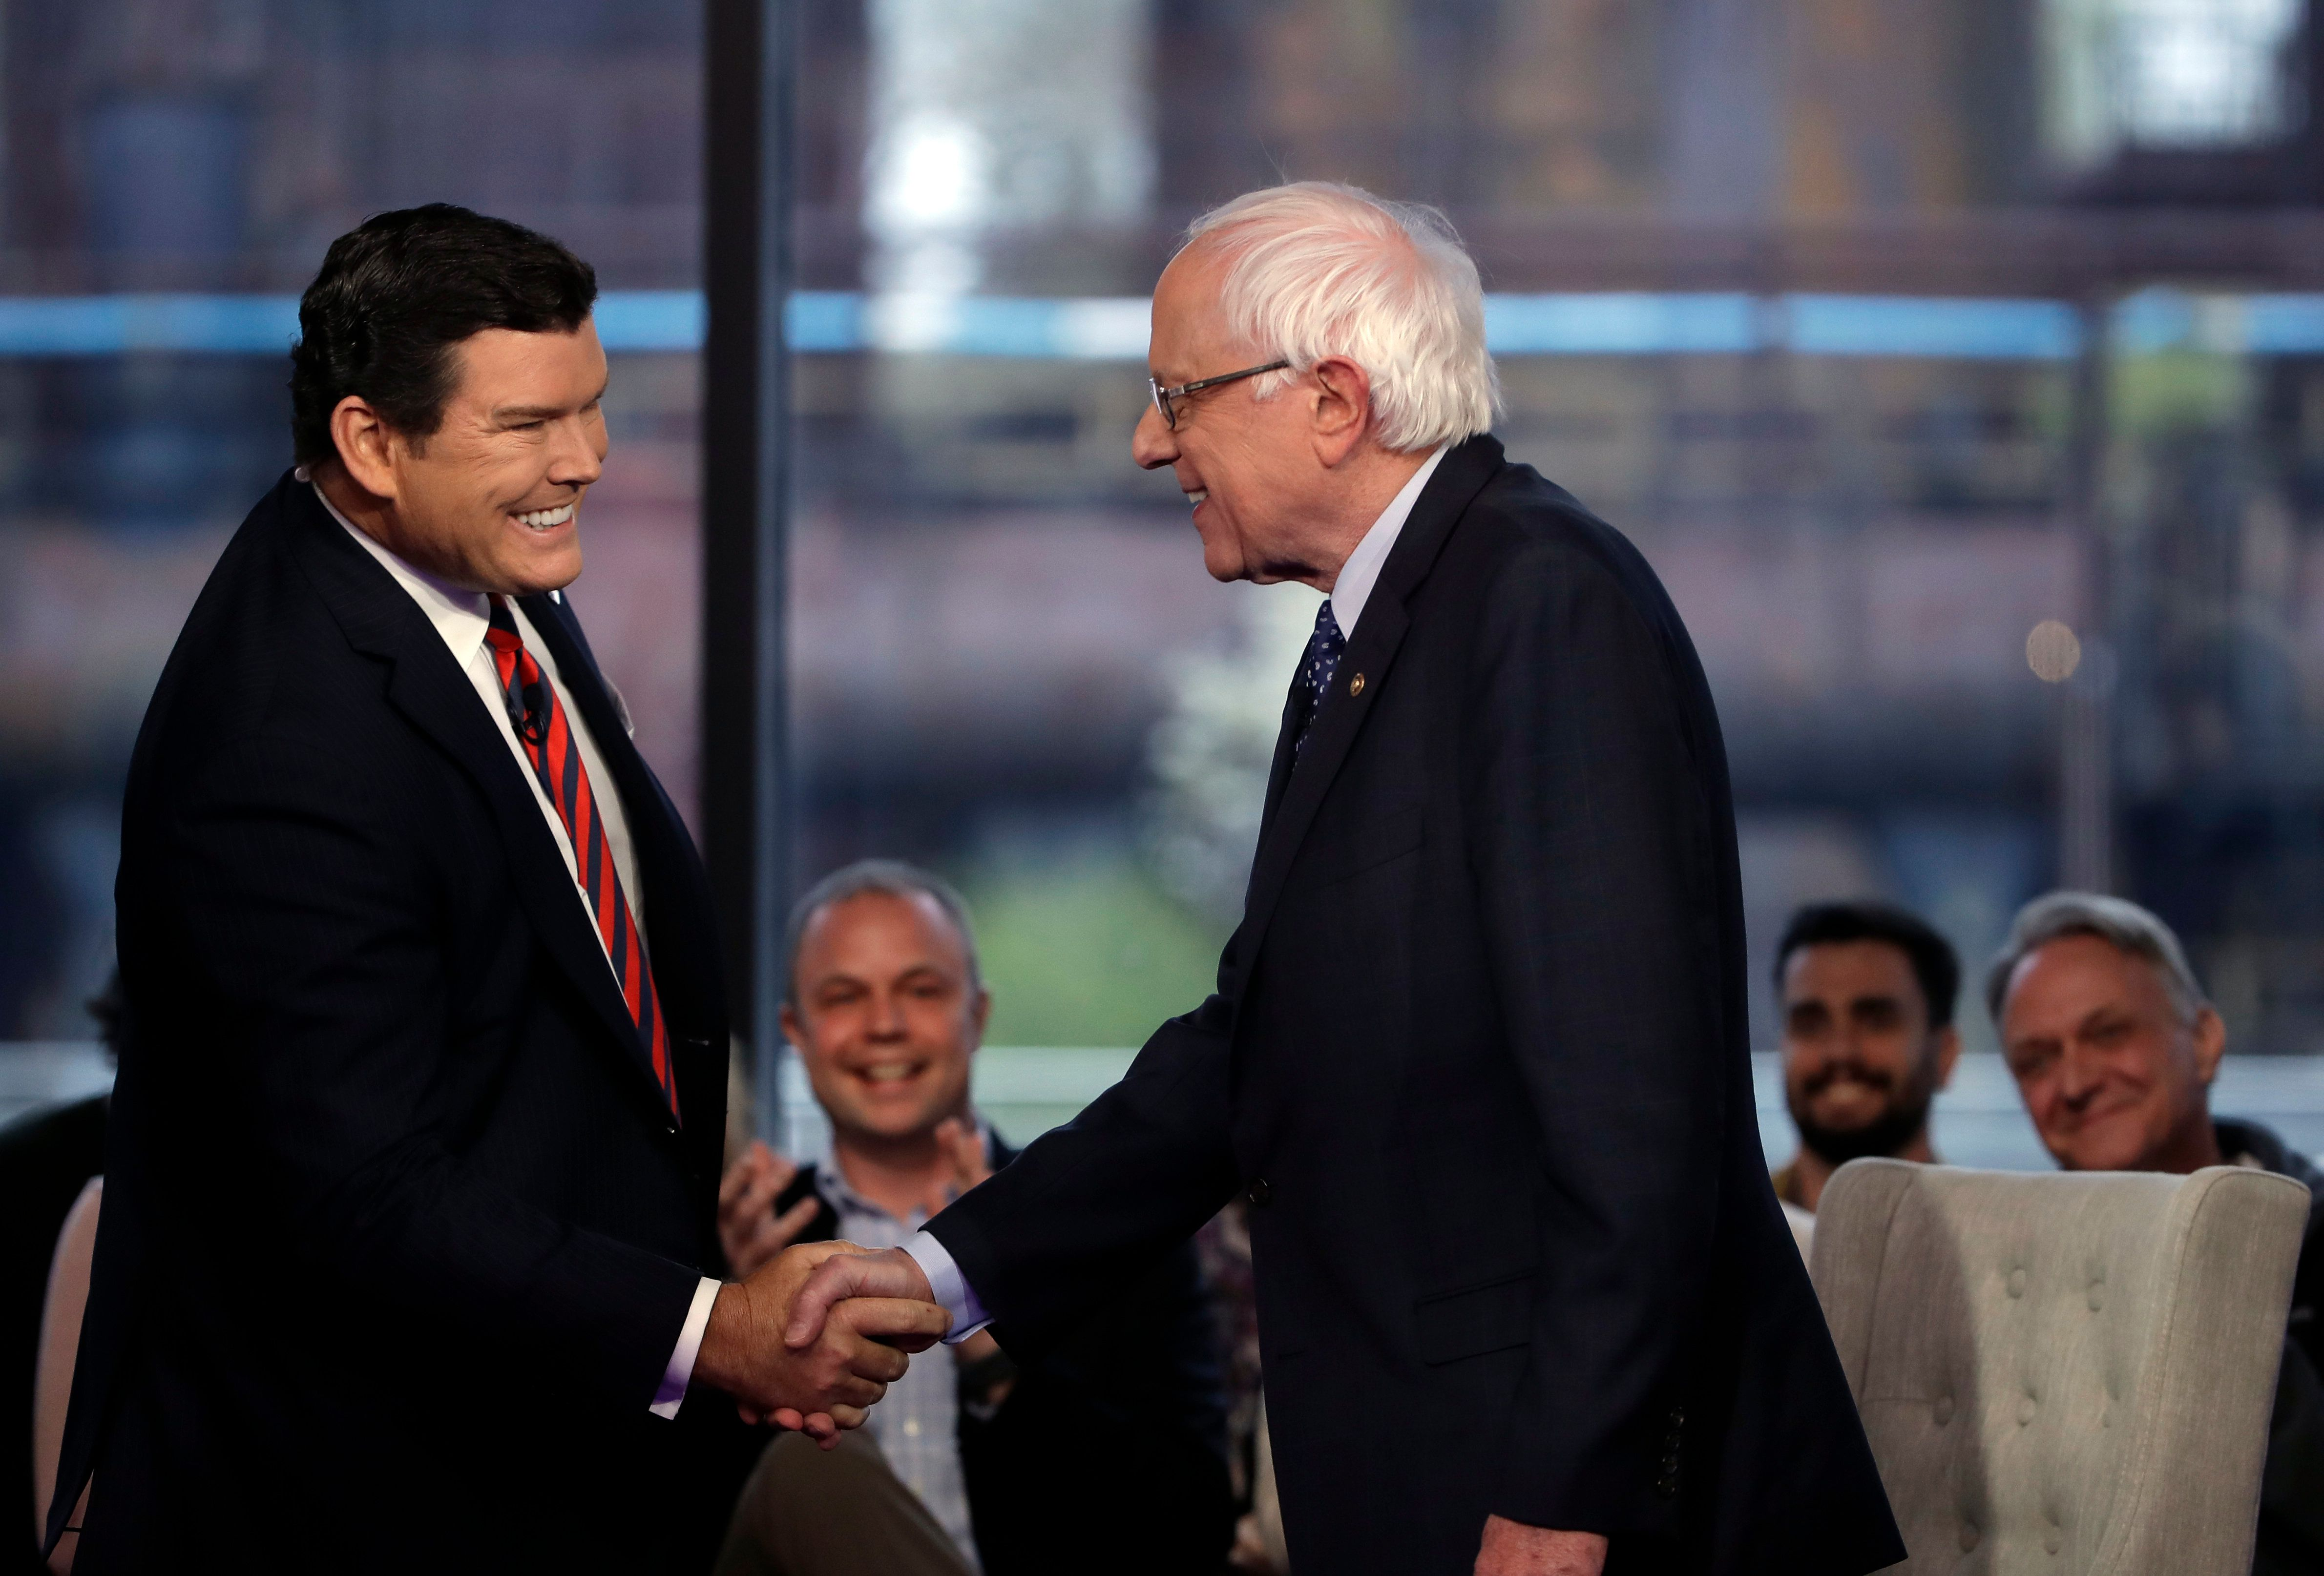 Sen. Bernie Sanders shakes hands with Bret Baier during a Fox News town-hall style event Monday April 15, 2019 in Bethlehem, Pa. (AP Photo/Matt Rourke)